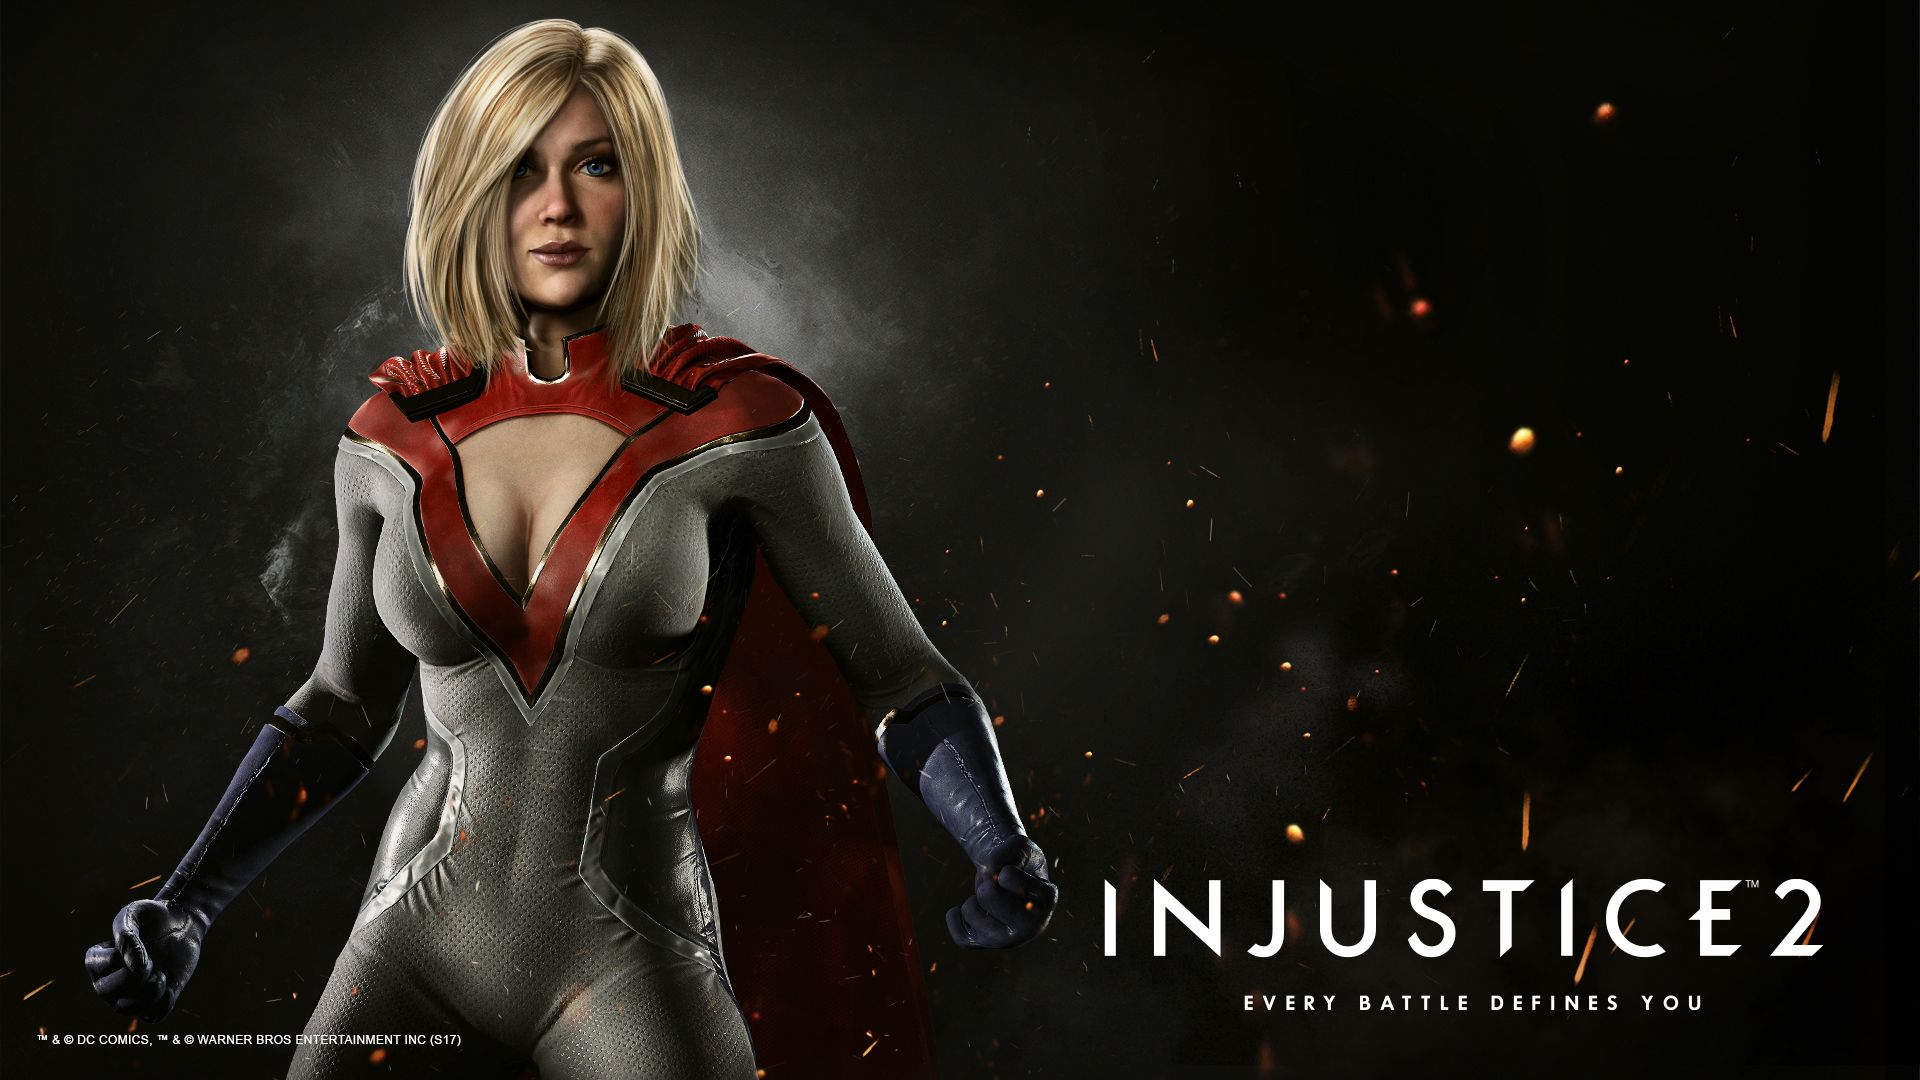 Injustice2-POWER-GIRL-wallpaper-1920x1080-34.jpg